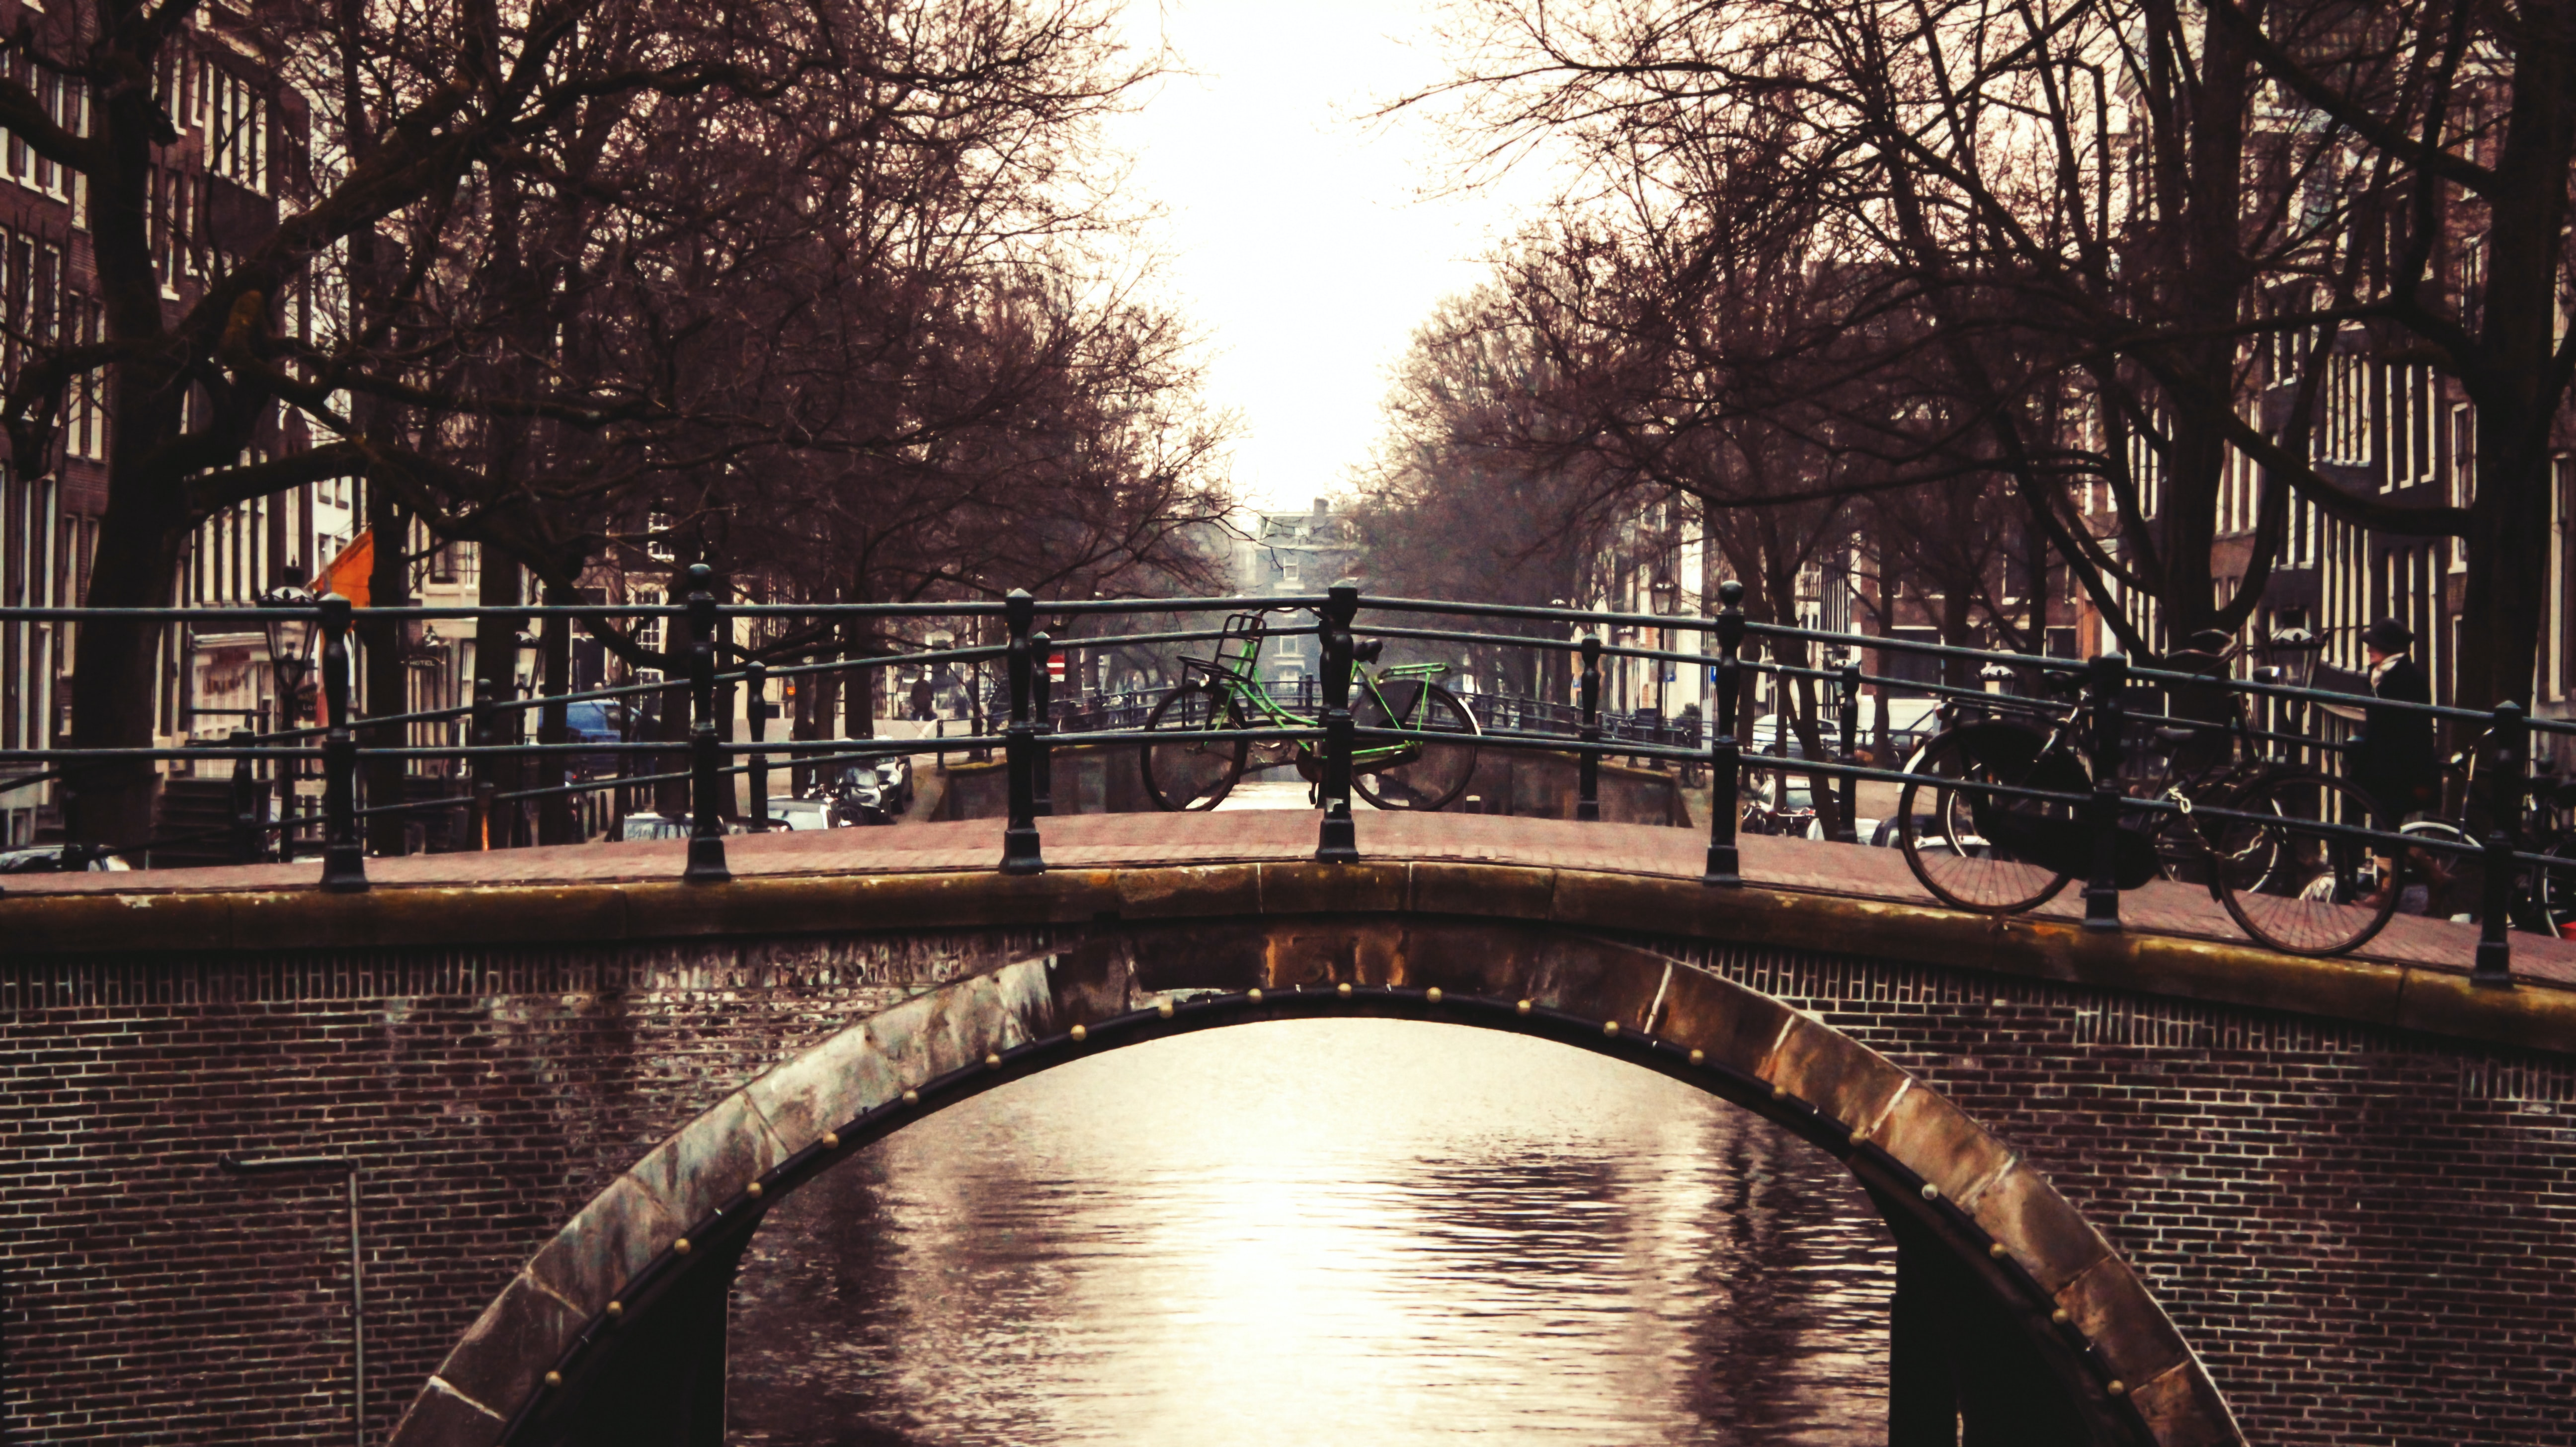 Amsterdam, Netherlands, Things to do in Europe in Summer